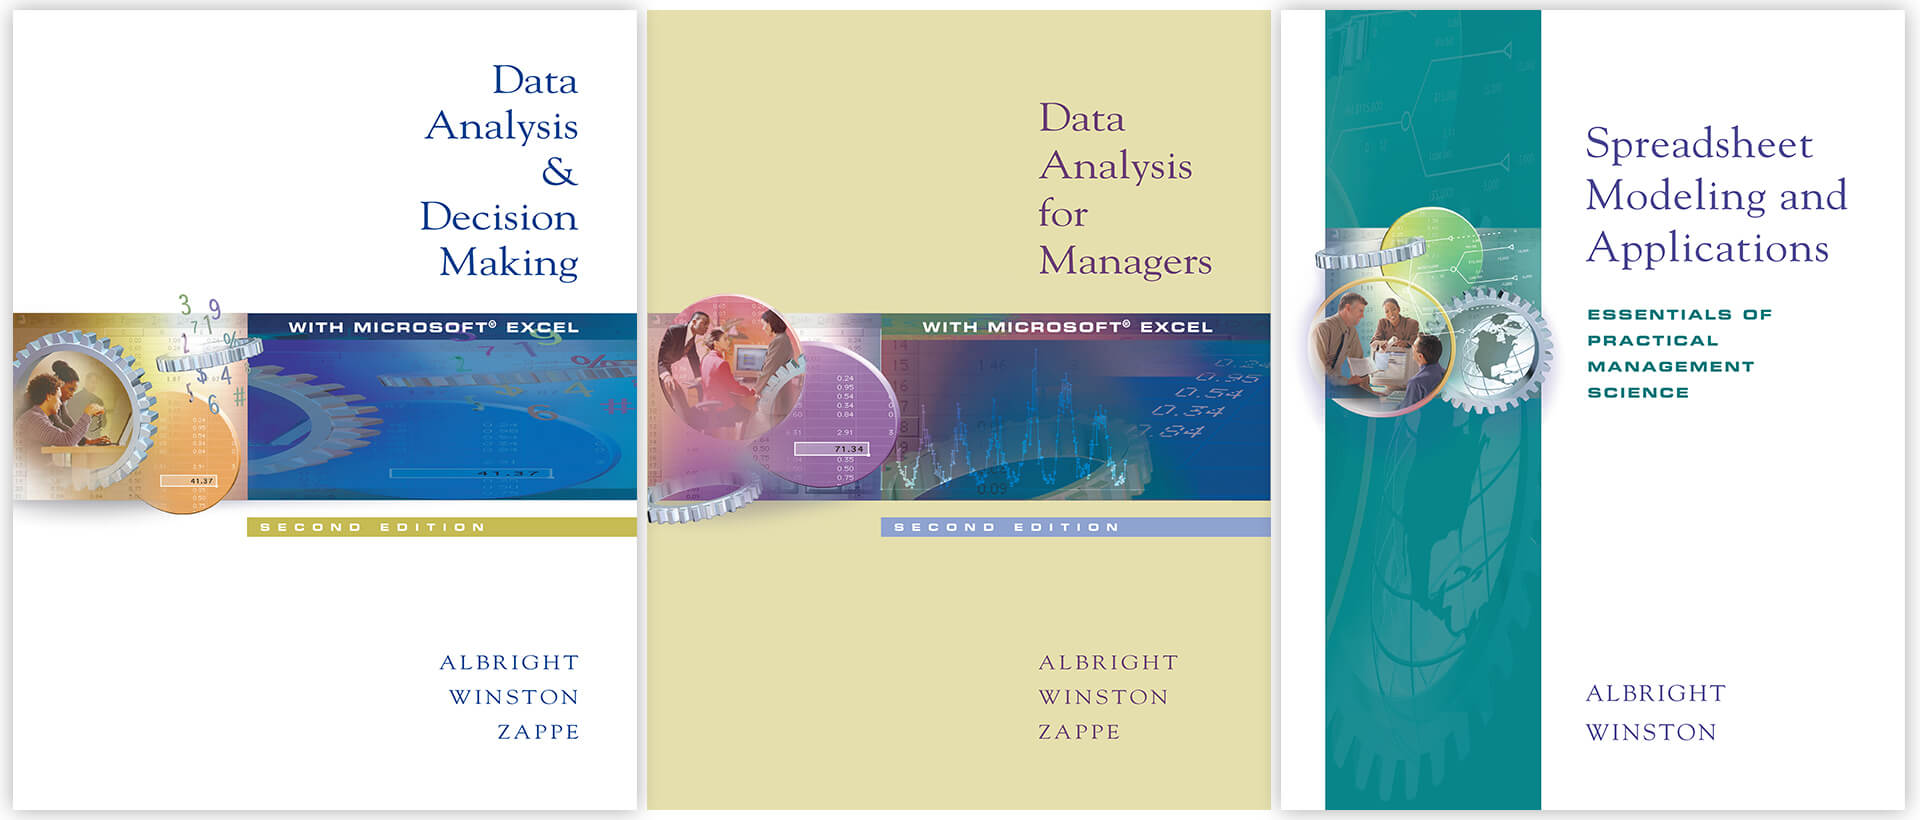 Data Analysis trio